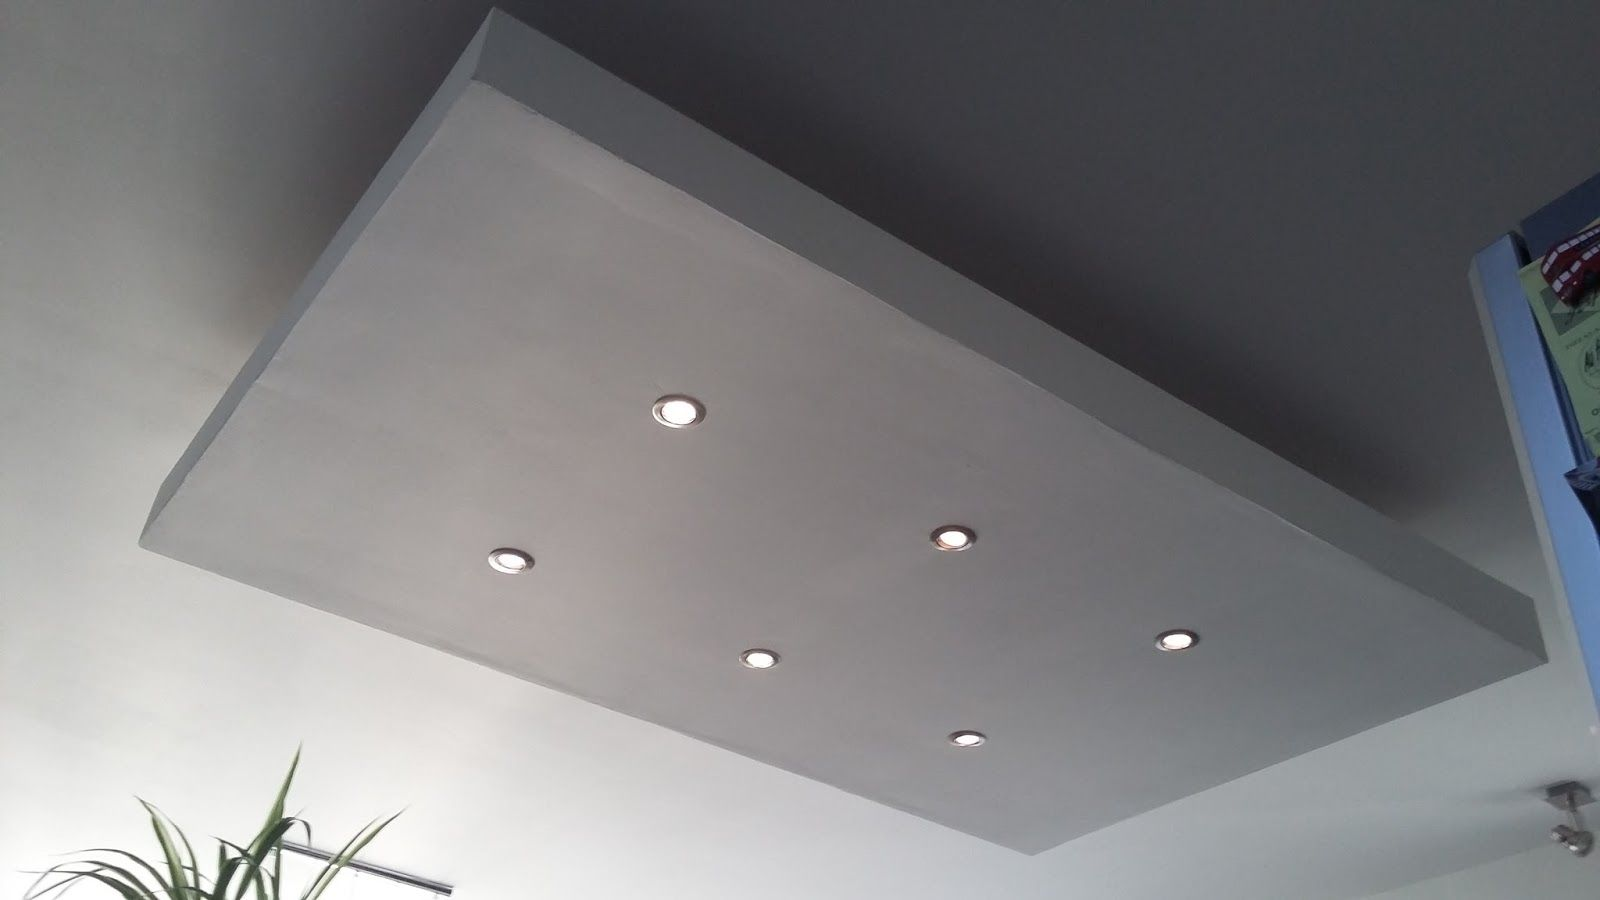 D roch plafond descendu suspendu ilot central for Fabriquer un faux plafond